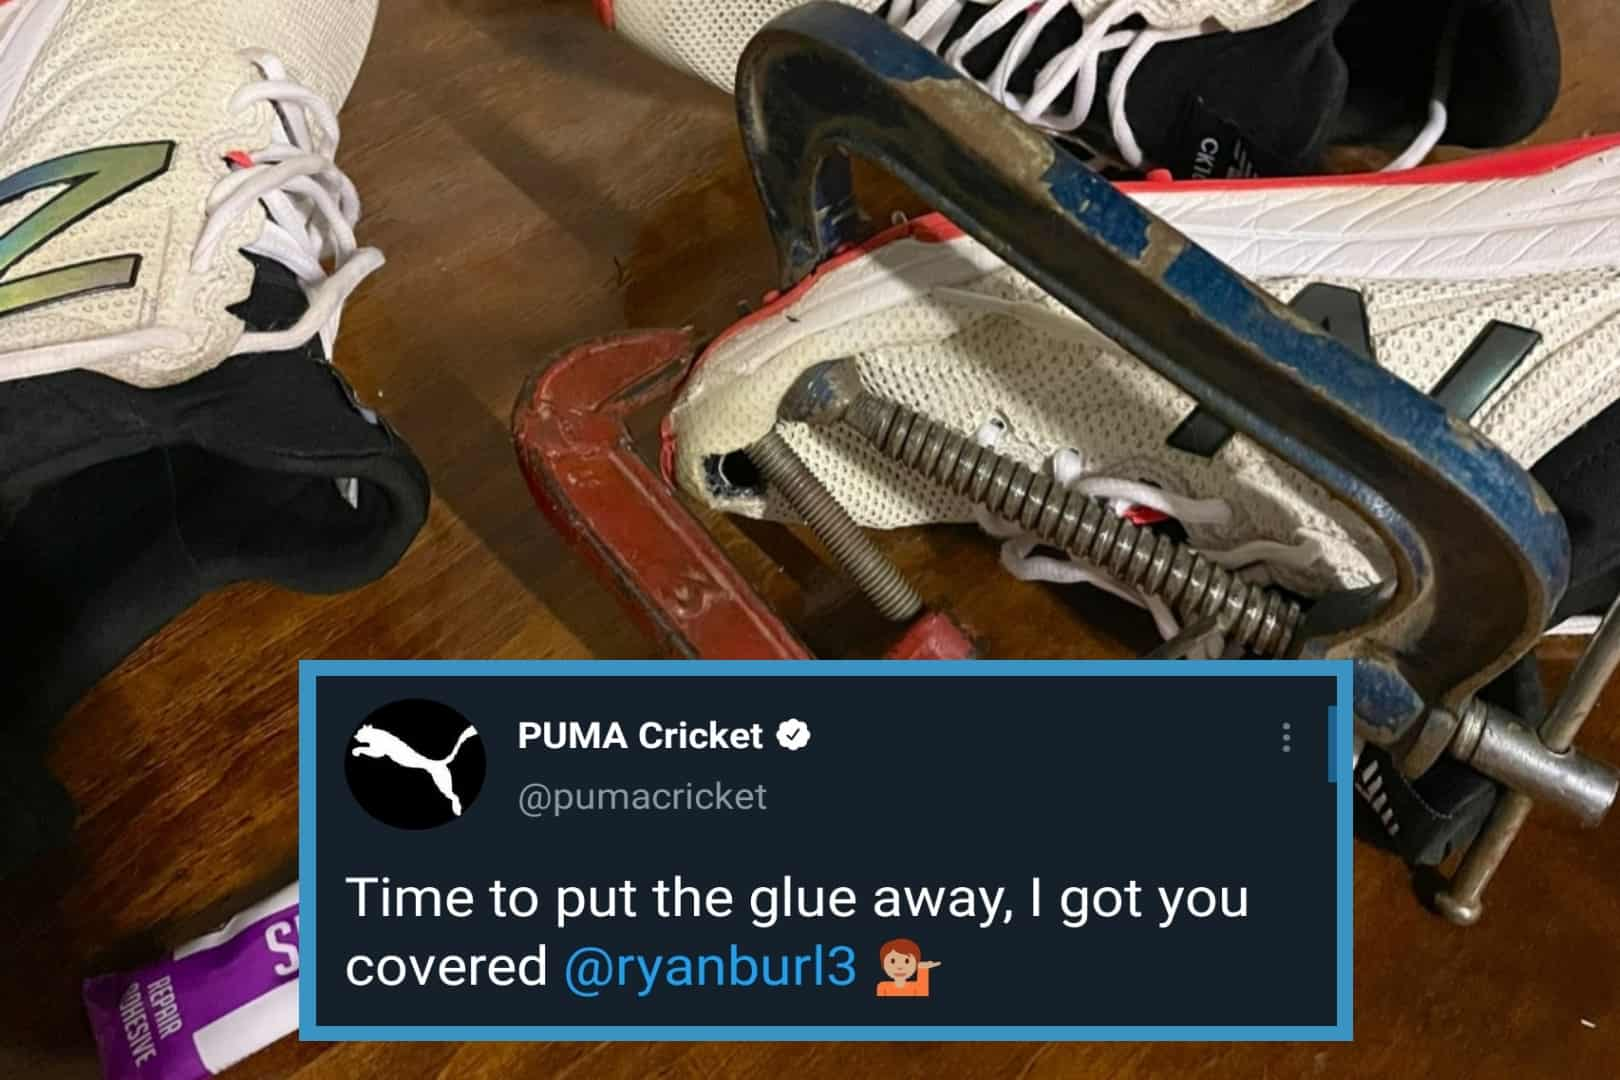 Puma Cricket Offers Support After Zimbabwe Cricketer Ryan Burl Posts An Image Of His Ripped Shoes